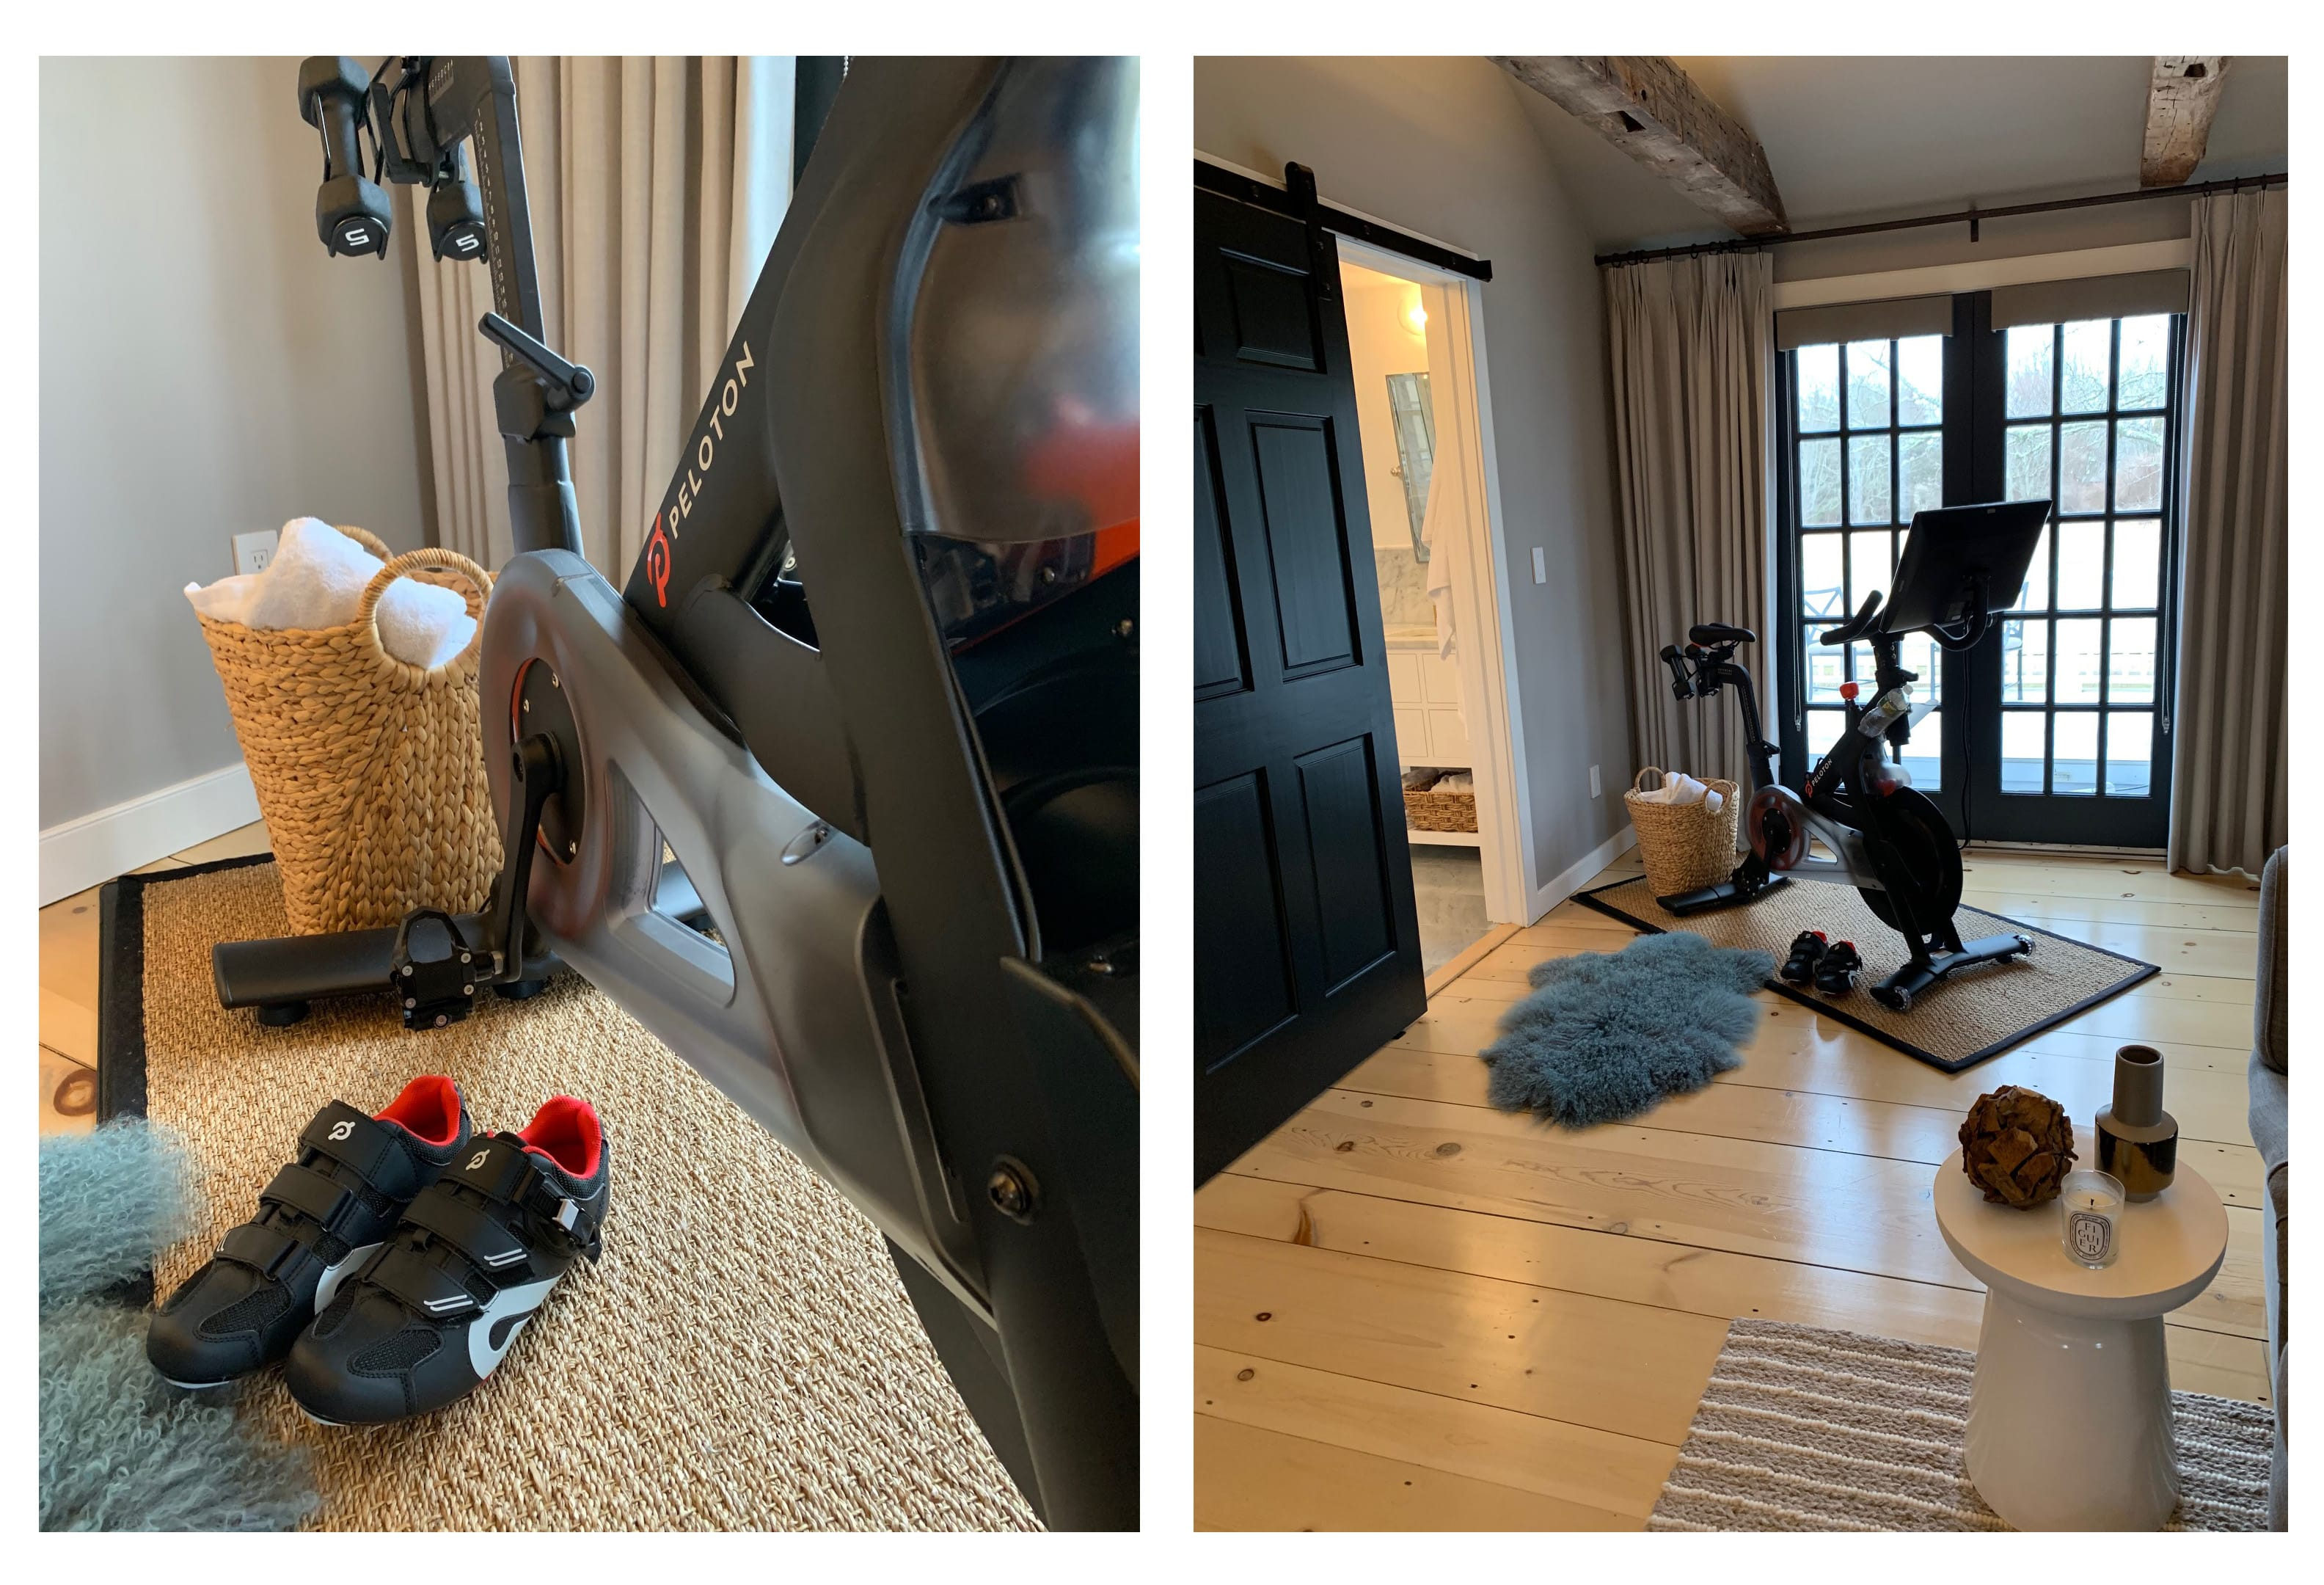 details of client's at home gym featuring the peloton bicycle.